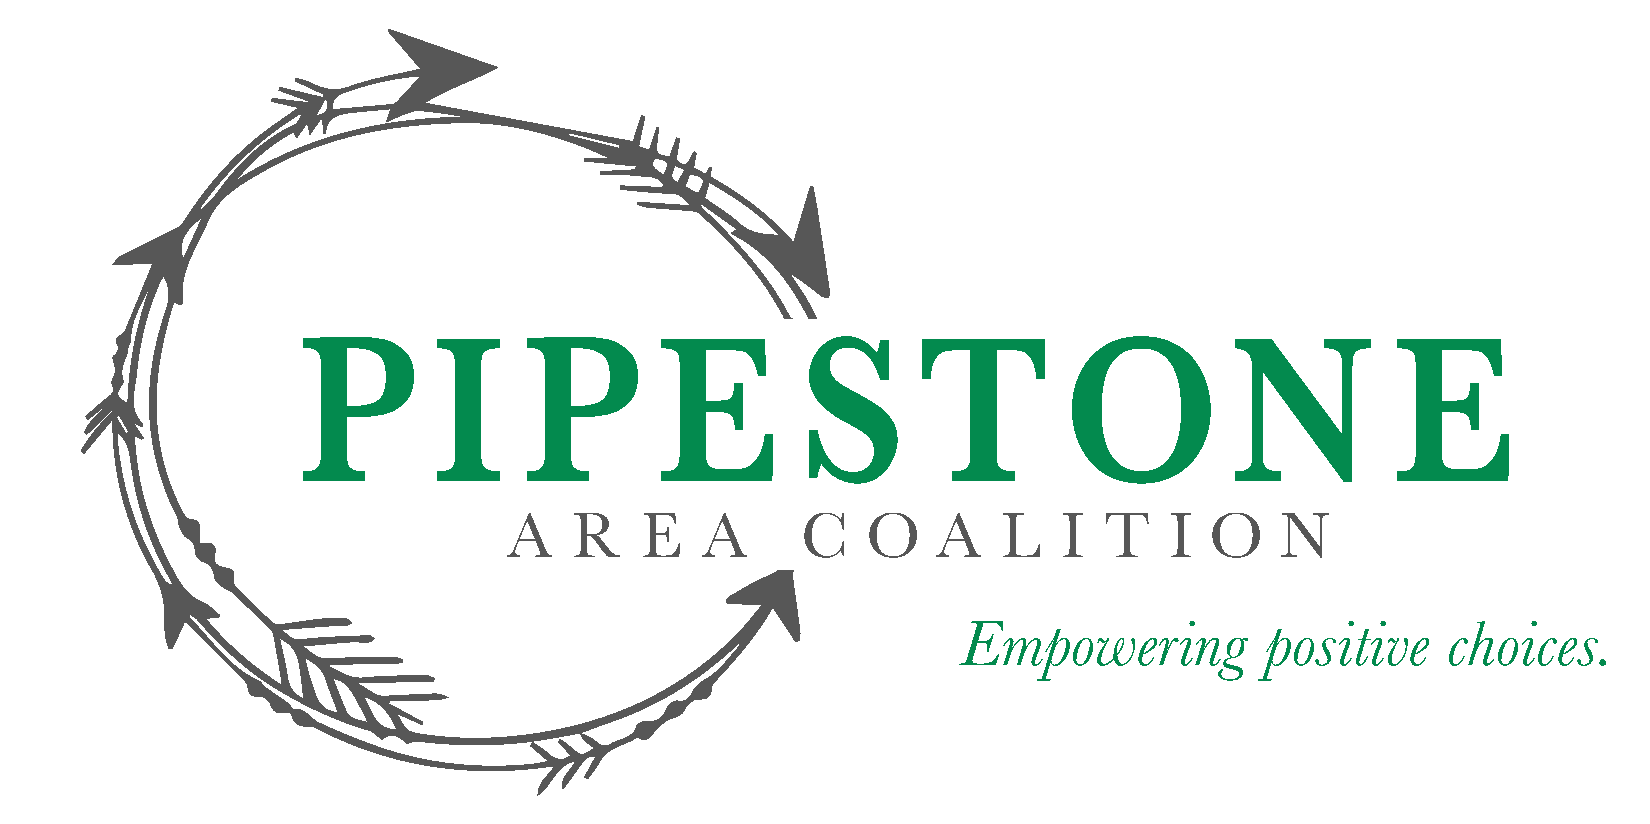 Pipestone Area Coalition